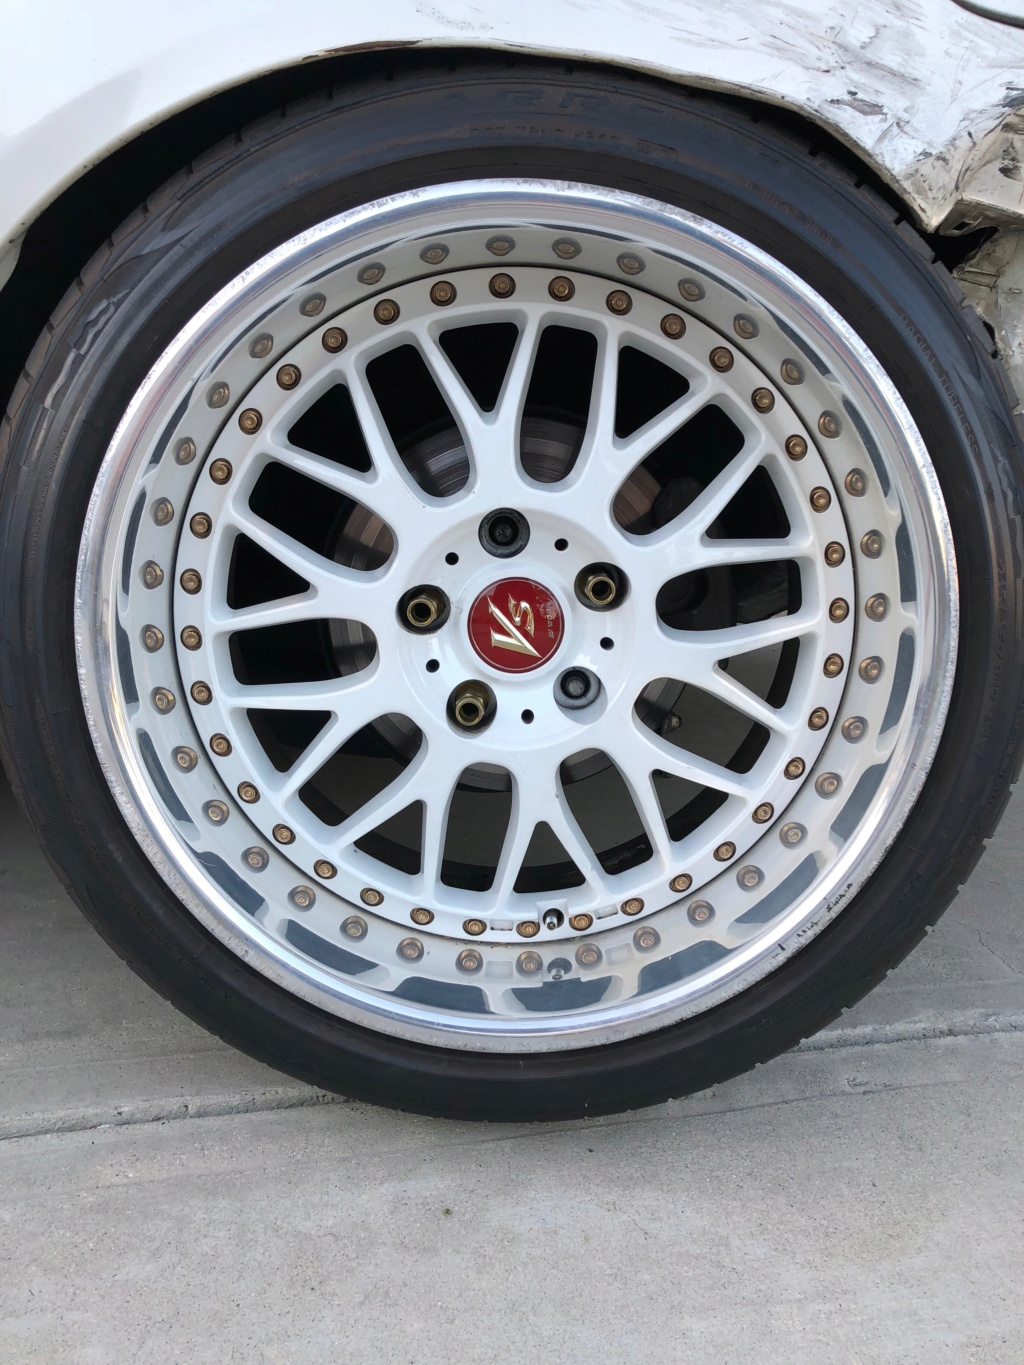 Wheels For Sale: 17x9.5 +10 Work VSXX - $2000 OBO - Los Angeles, CA Img_0210